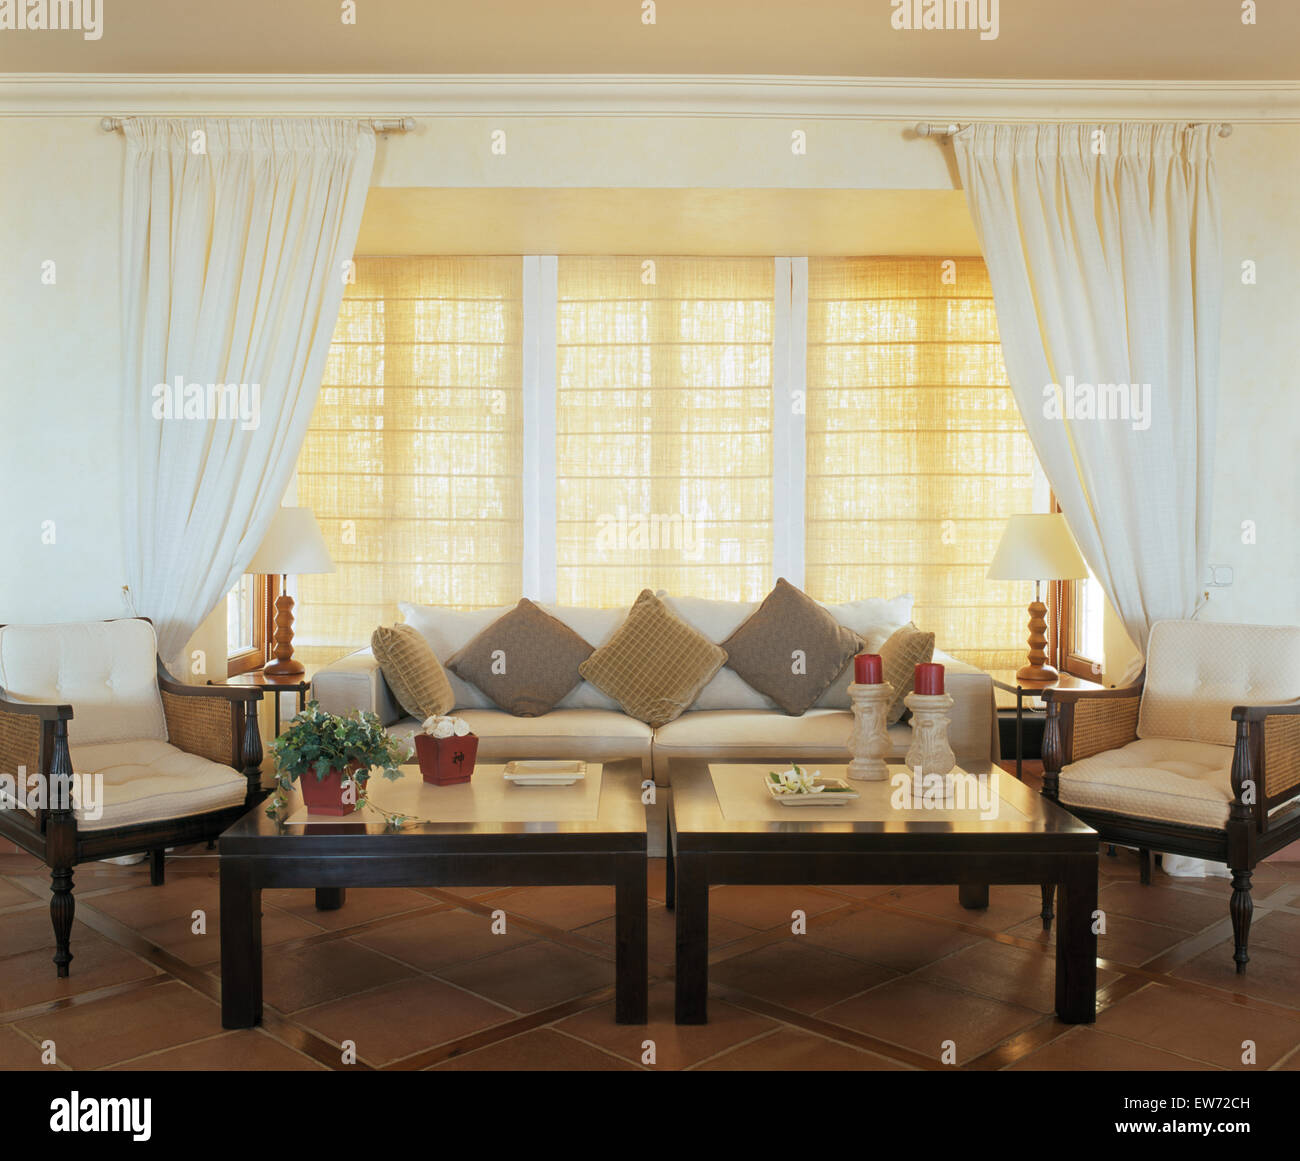 white curtains and split cane blinds on the window in spanish